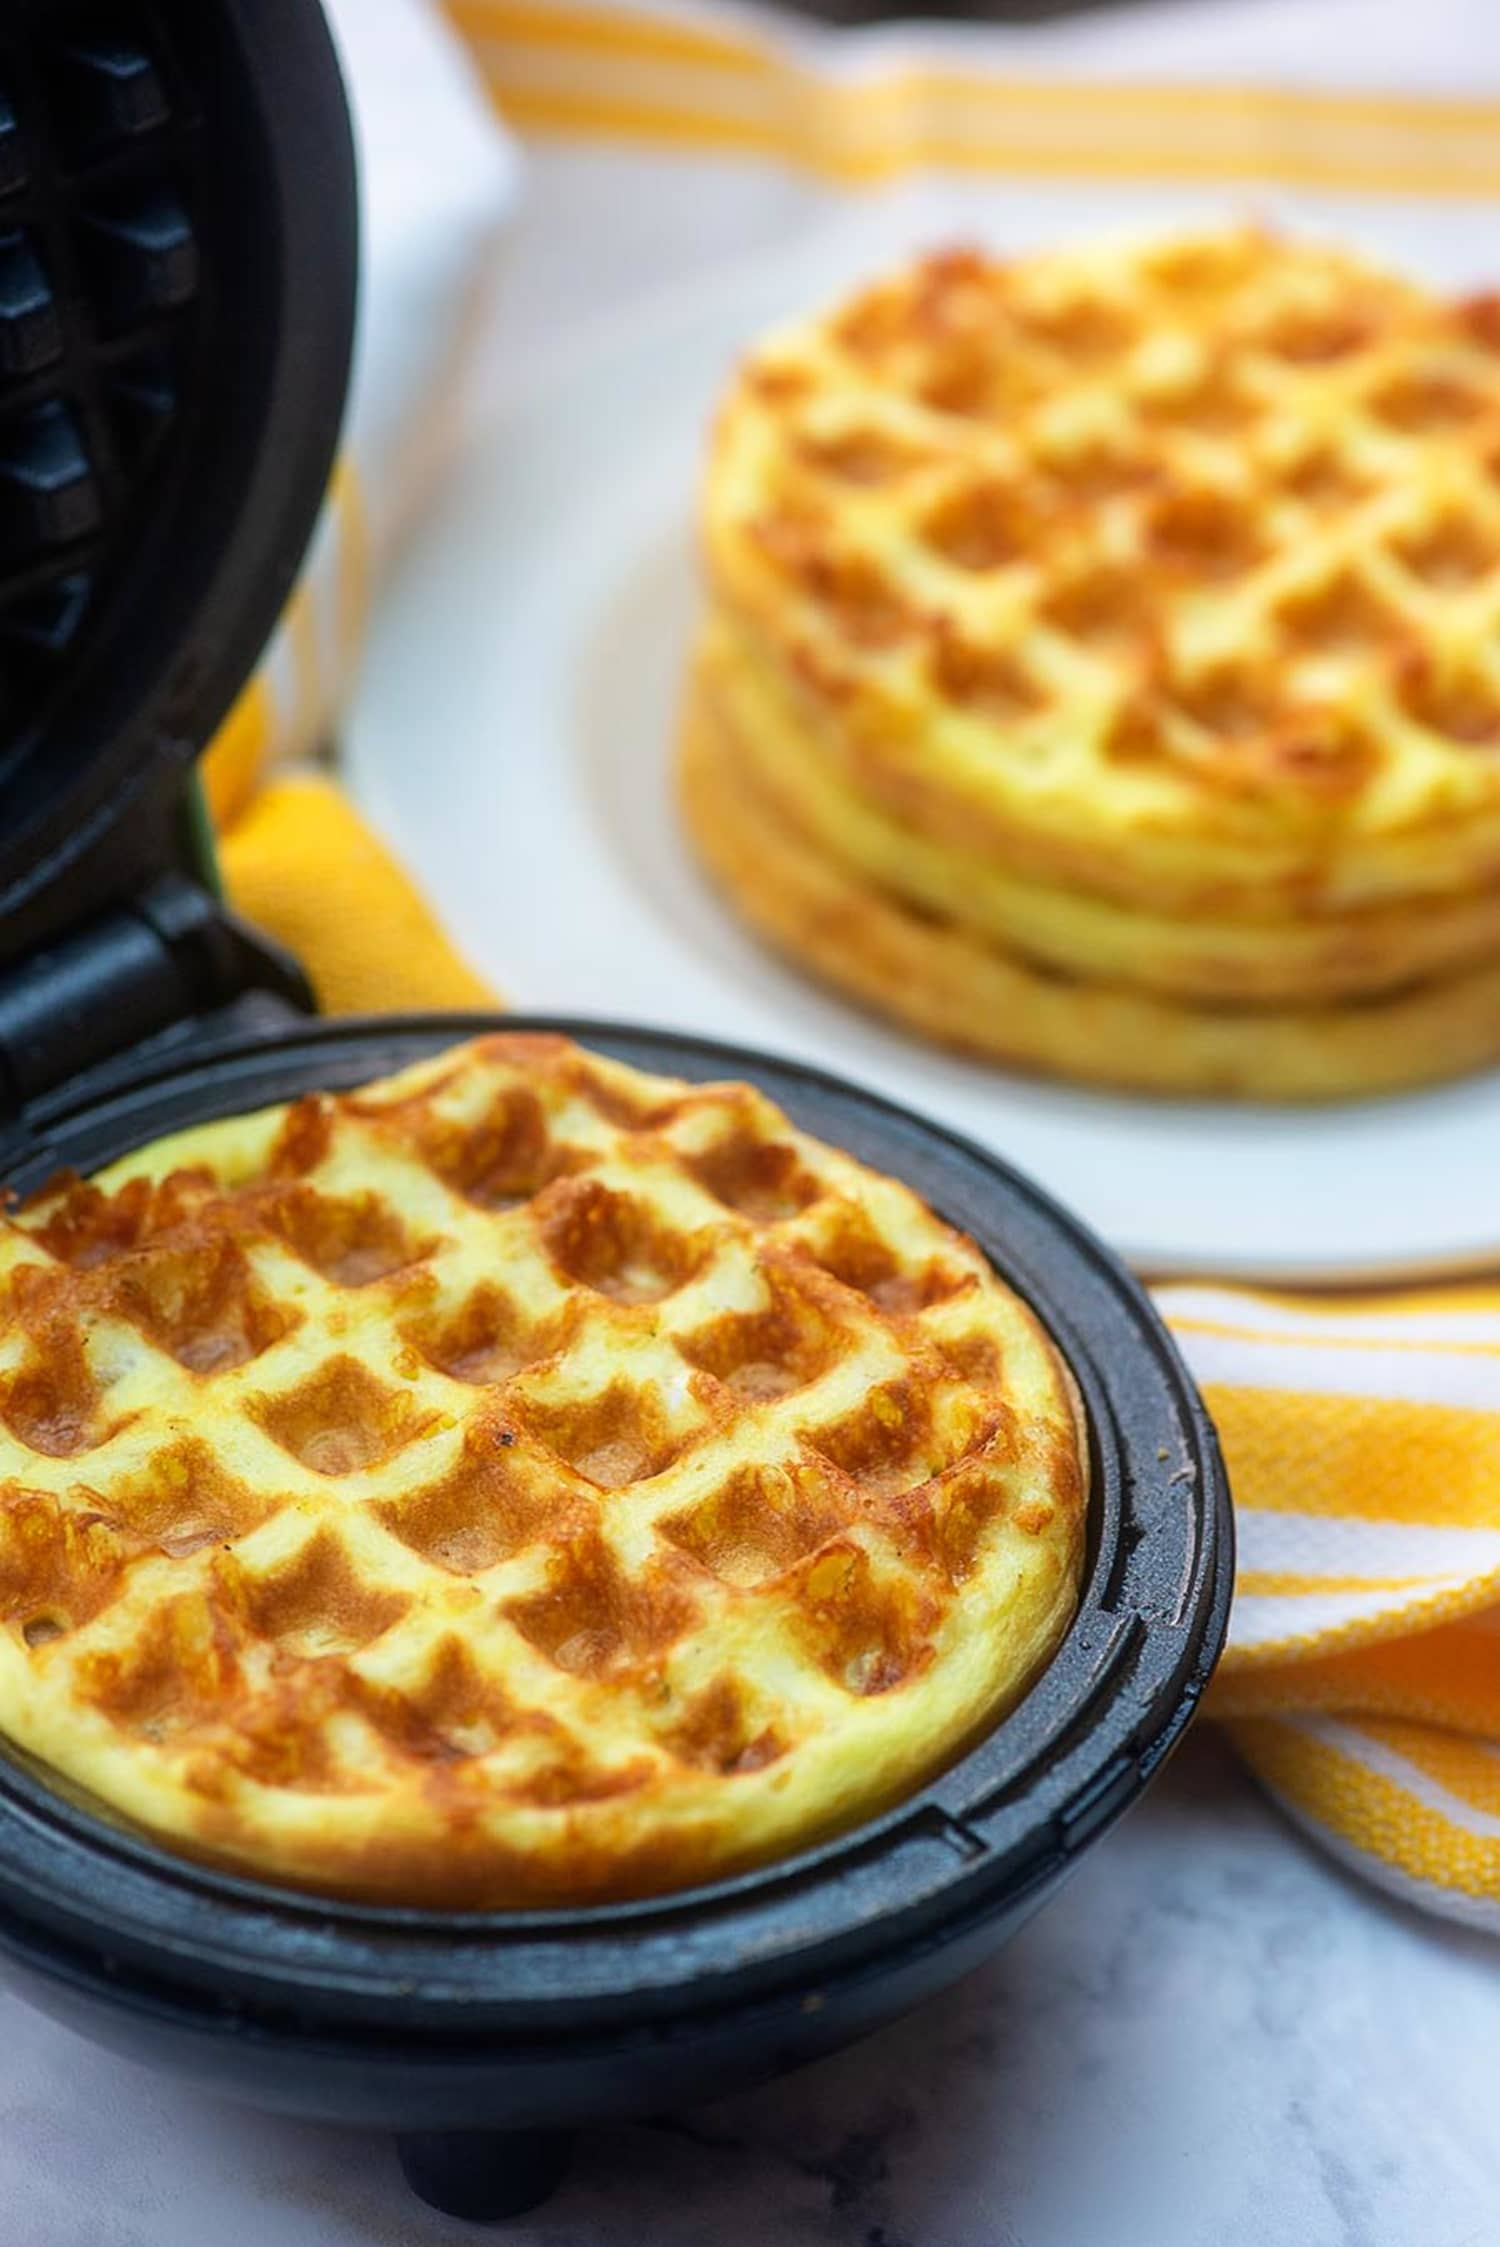 Just Learned What a Chaffle Is? Here Are 10 Keto Recipes to Get You Started.